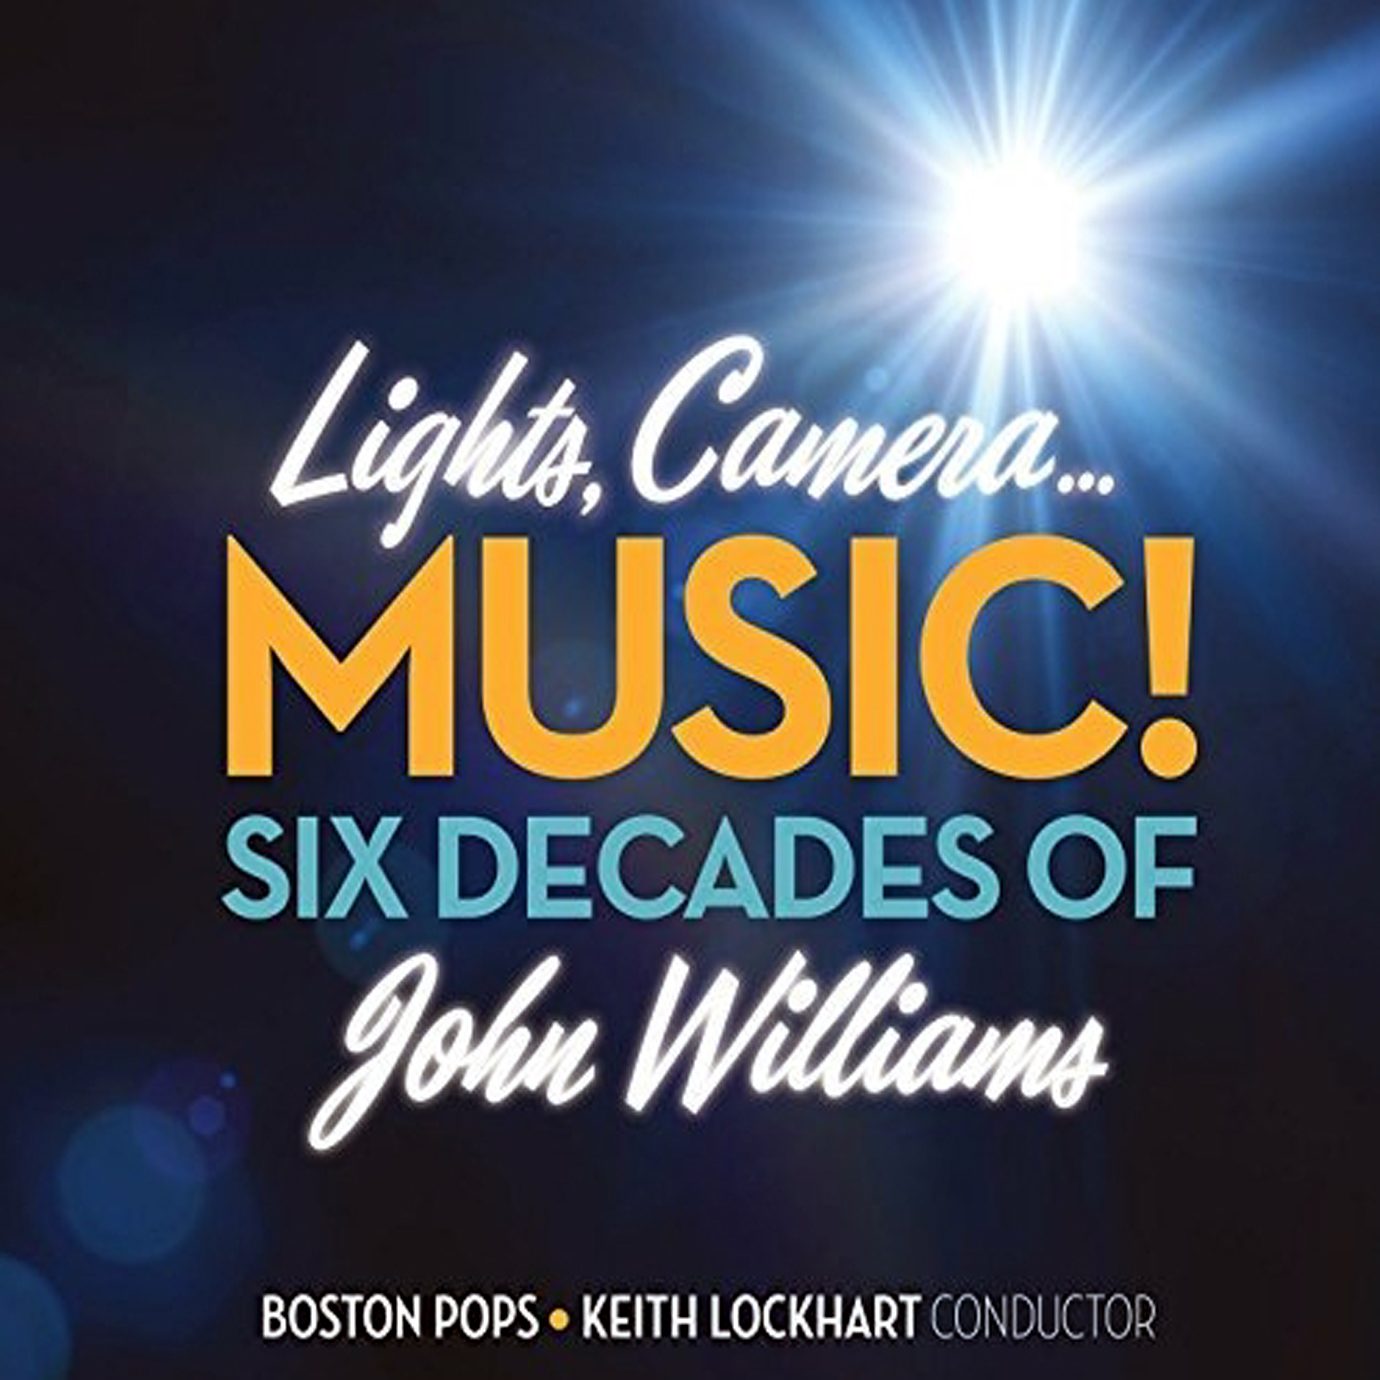 boston pops john williams.jpg